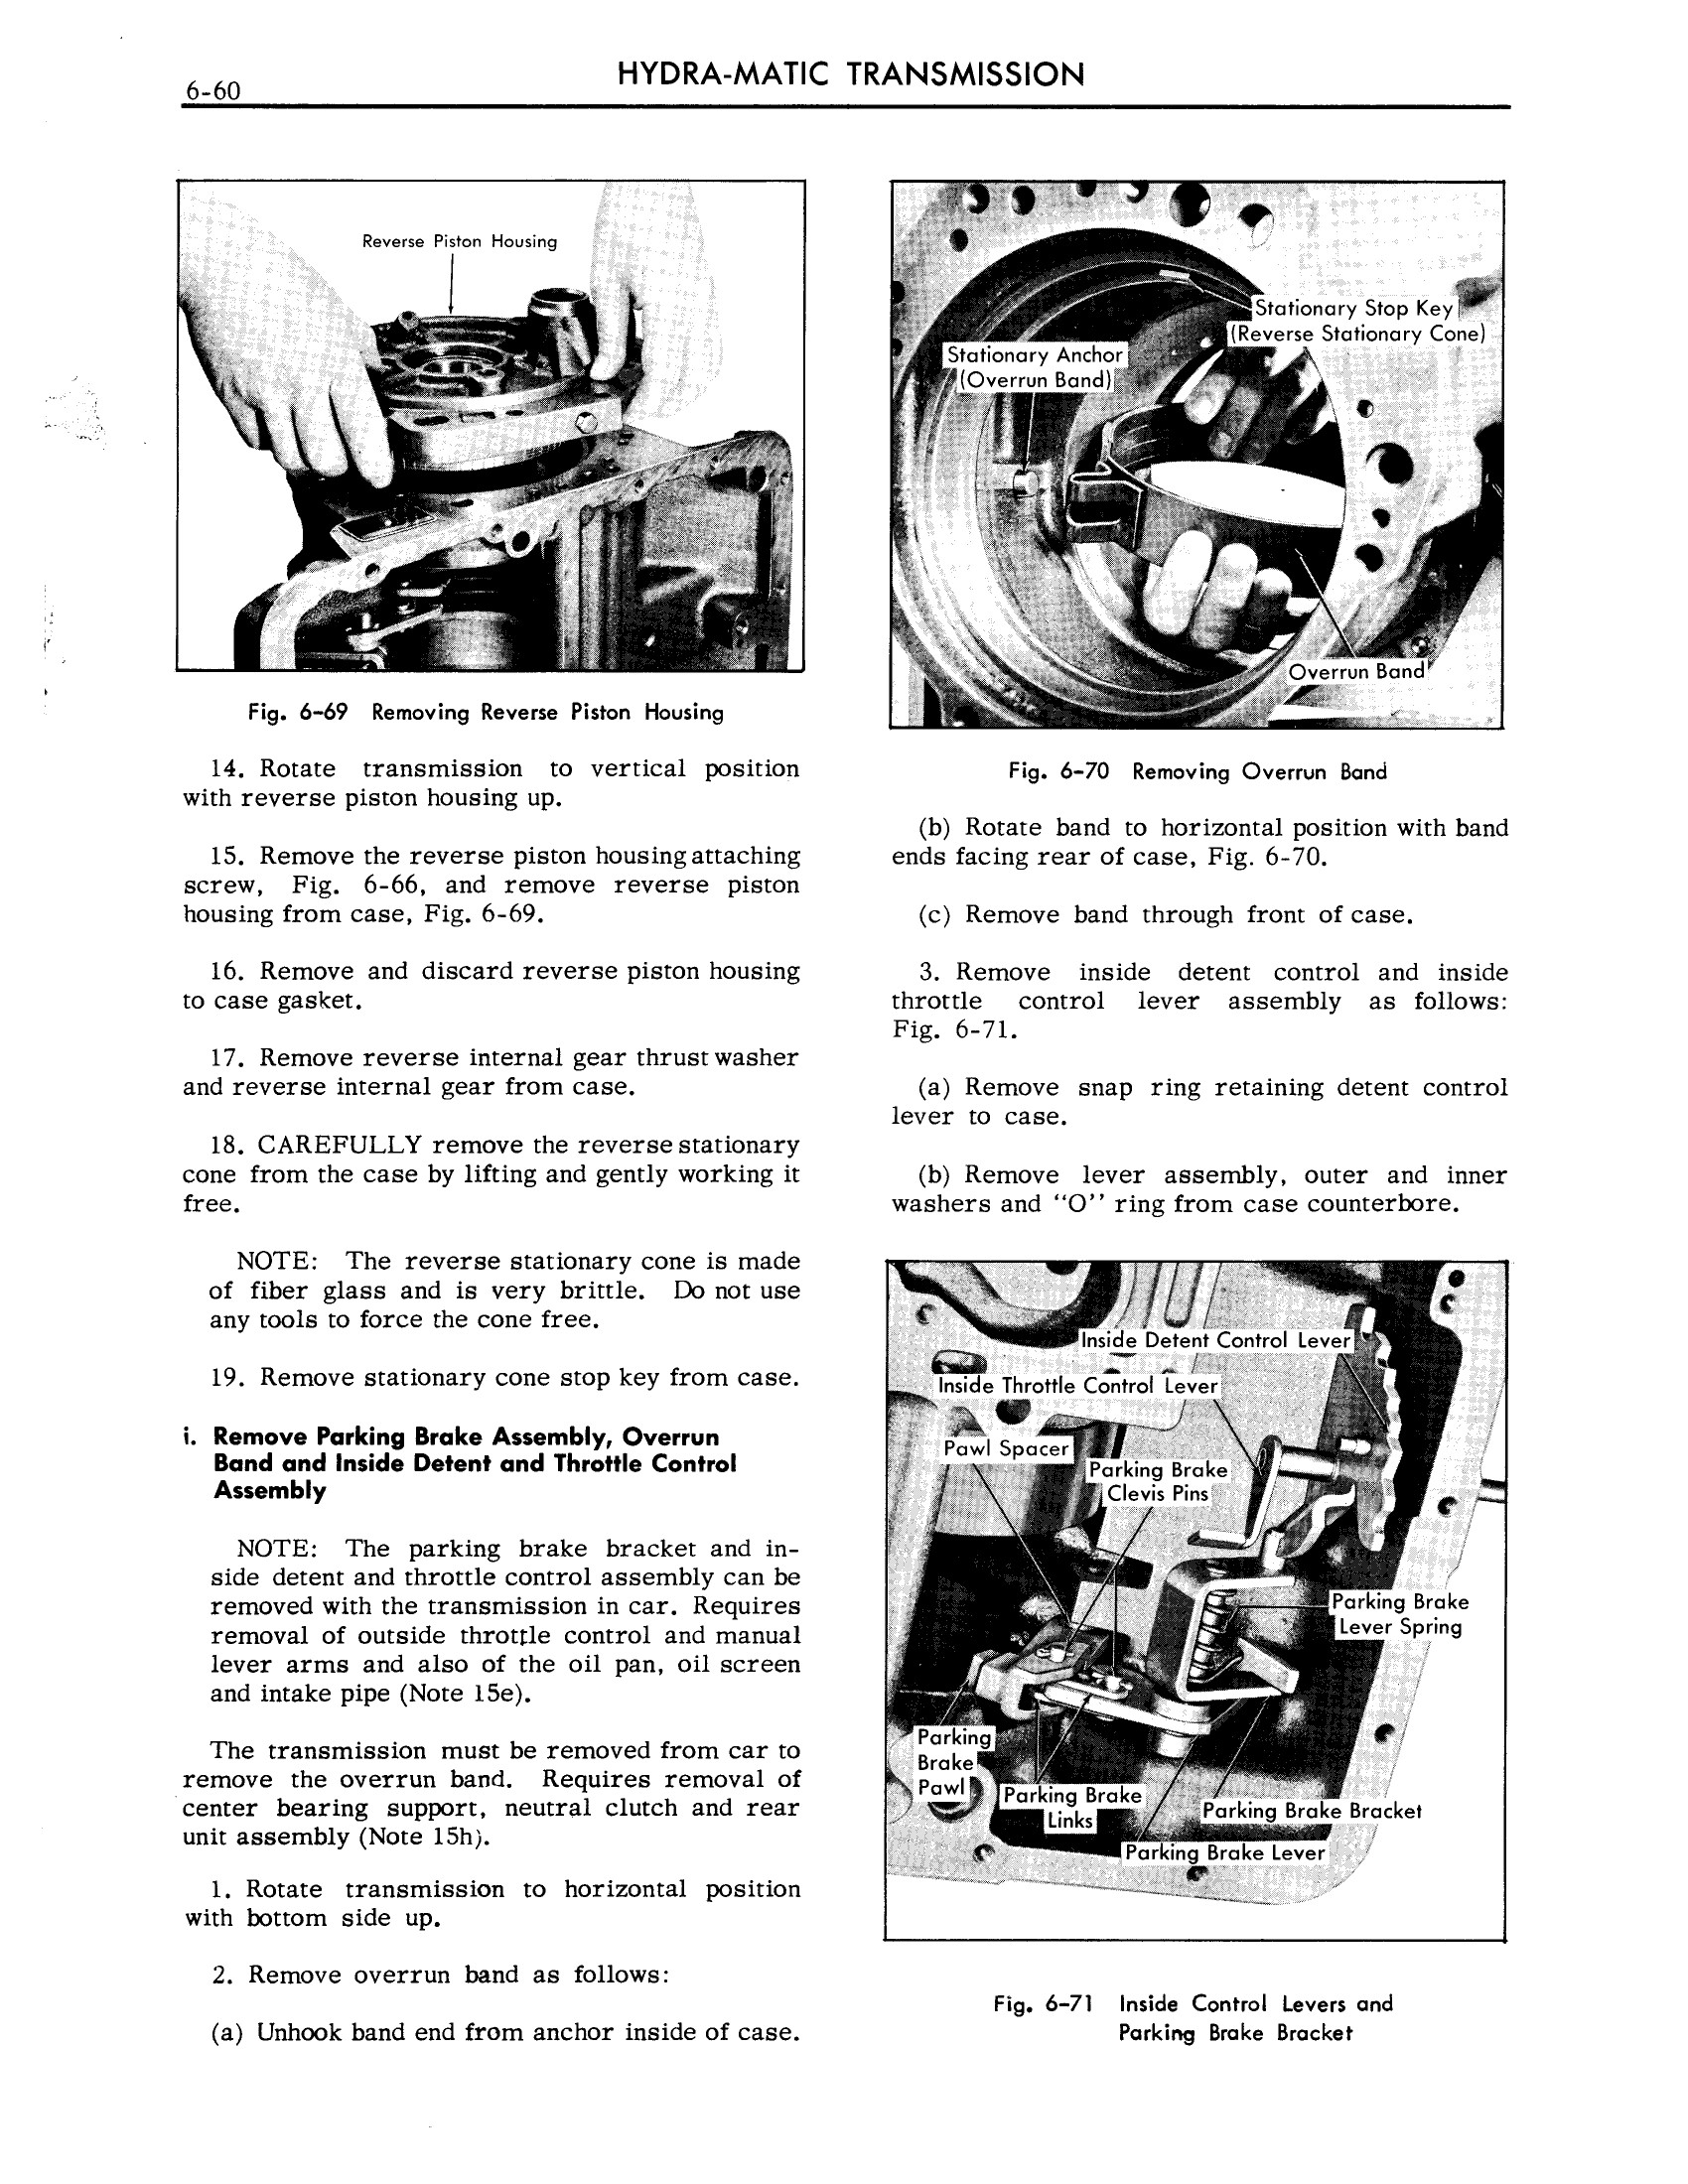 1959 Cadillac Shop Manual- Hydra-Matic Page 60 of 89